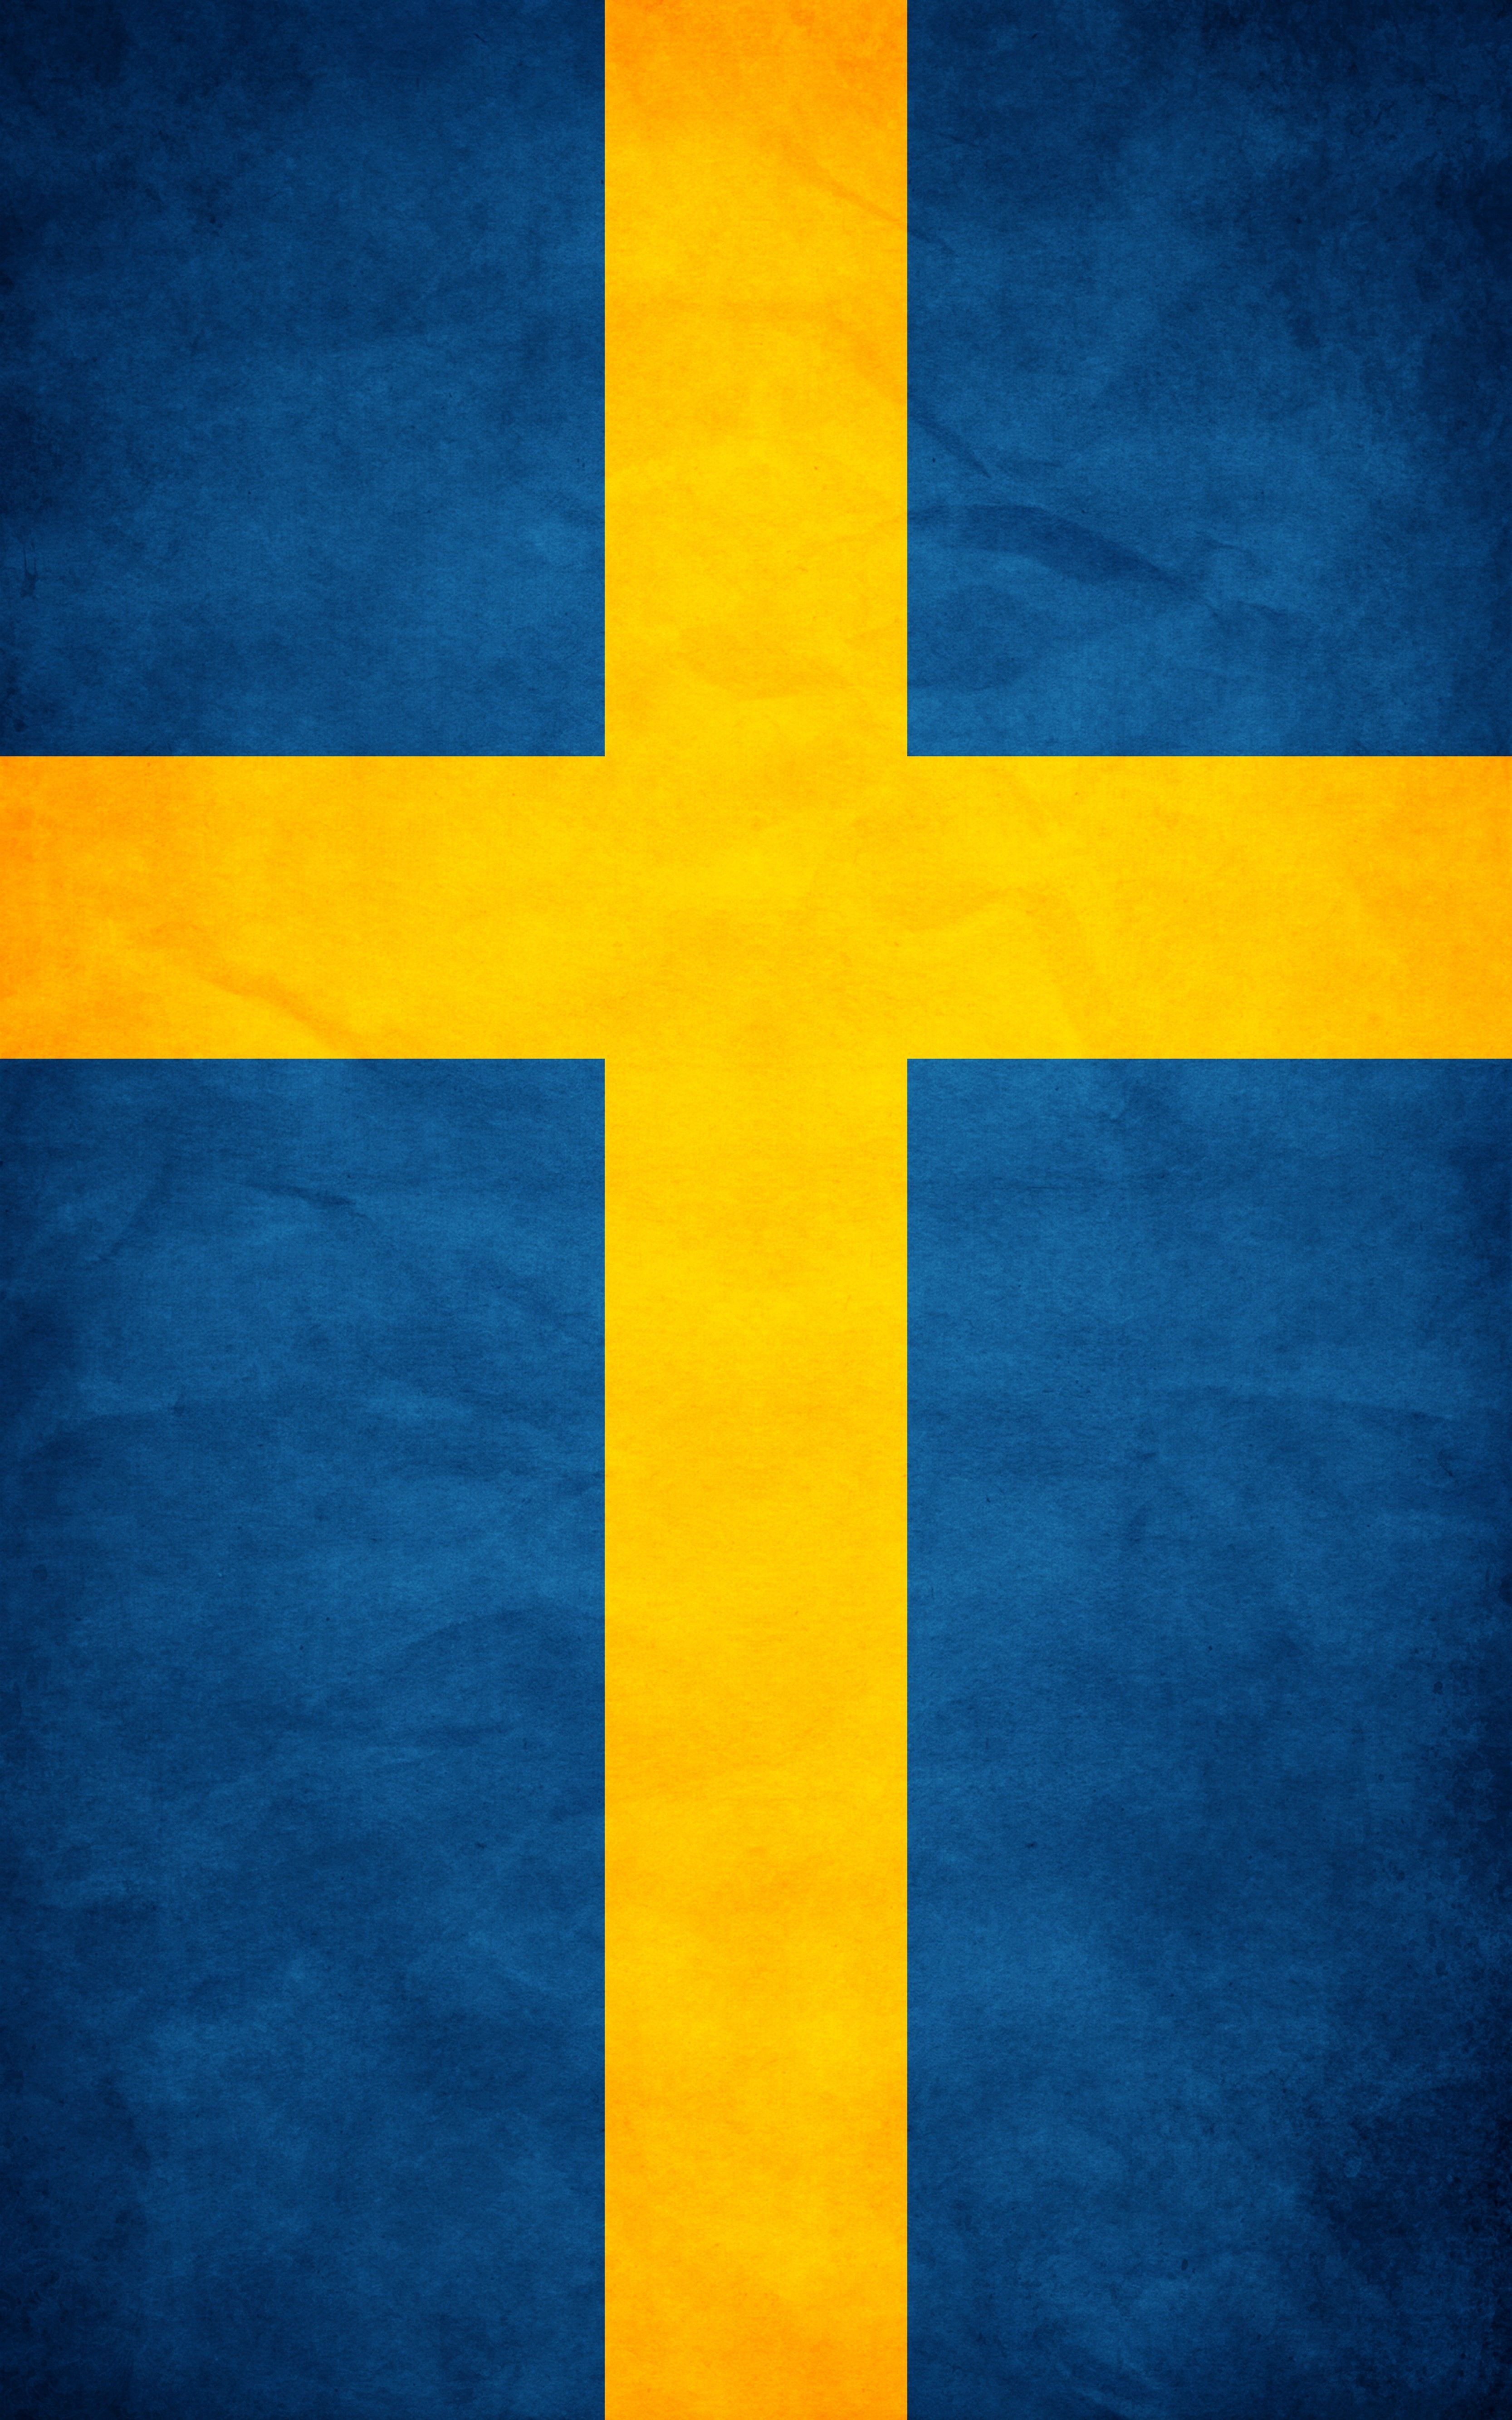 Swedish Flag Swedish Flag Wallpaper Background Design Sweden Flag